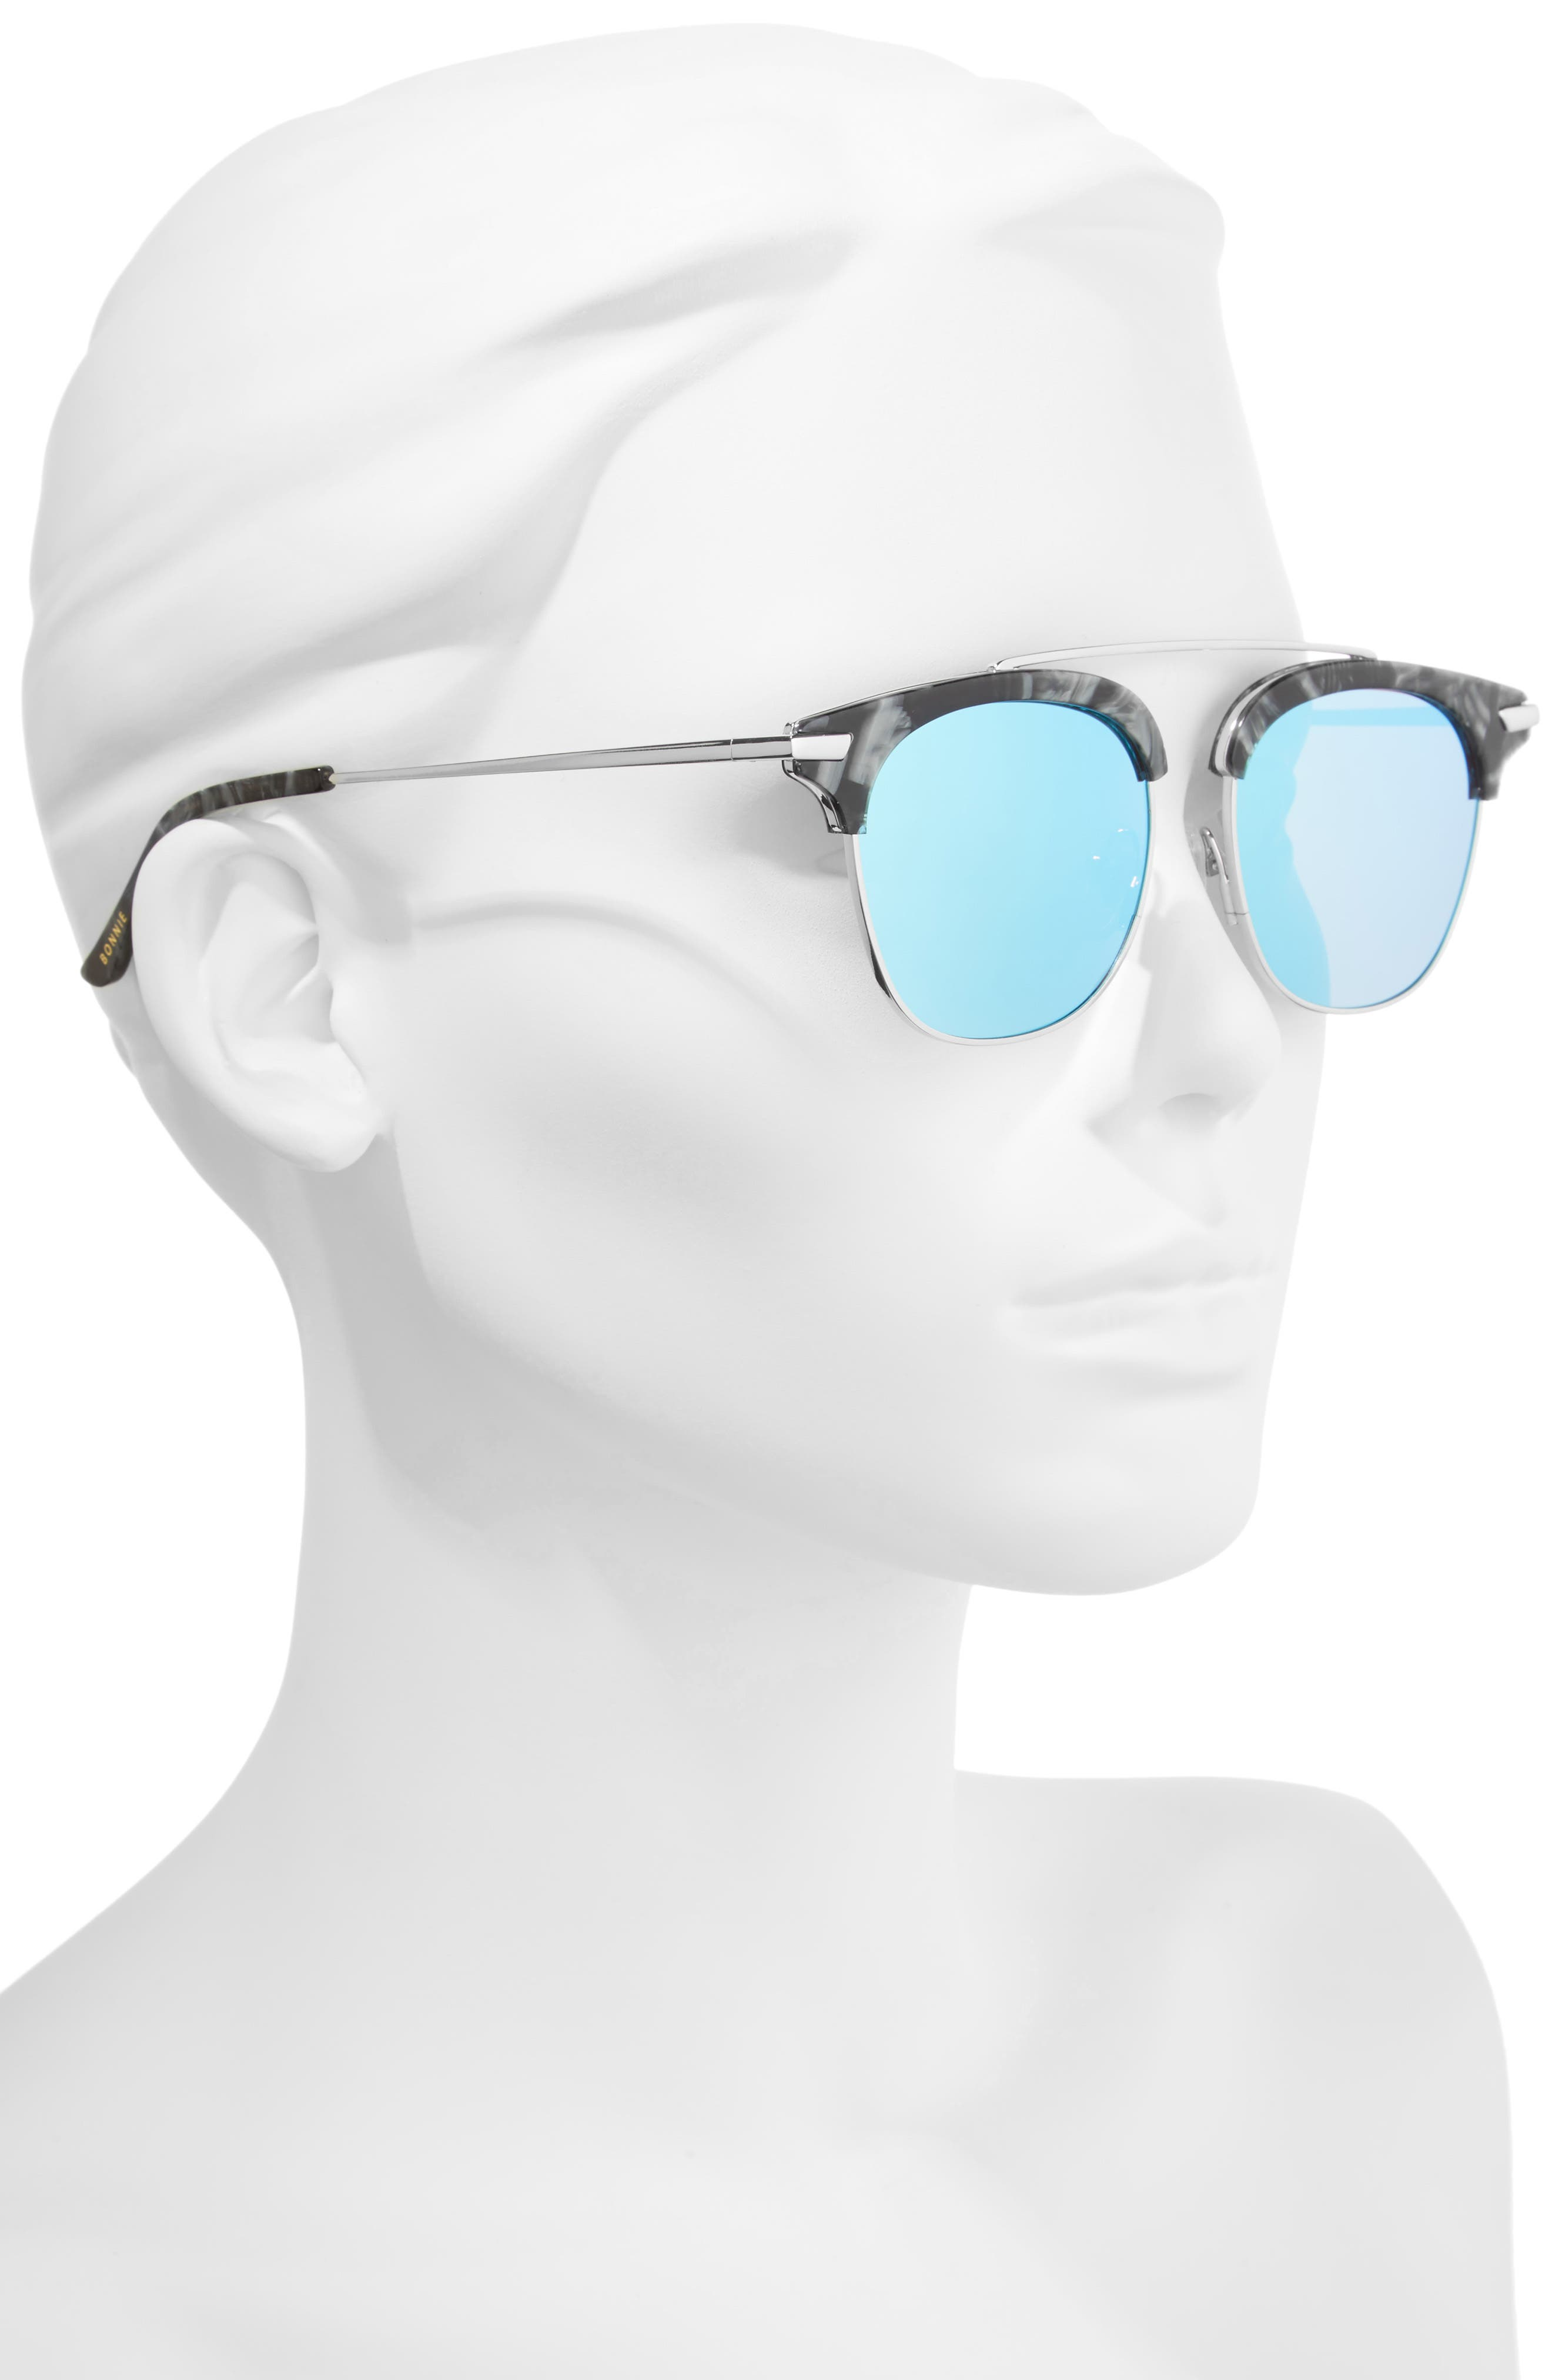 Alternate Image 2  - Bonnie Clyde Midway 51mm Polarized Brow Bar Sunglasses